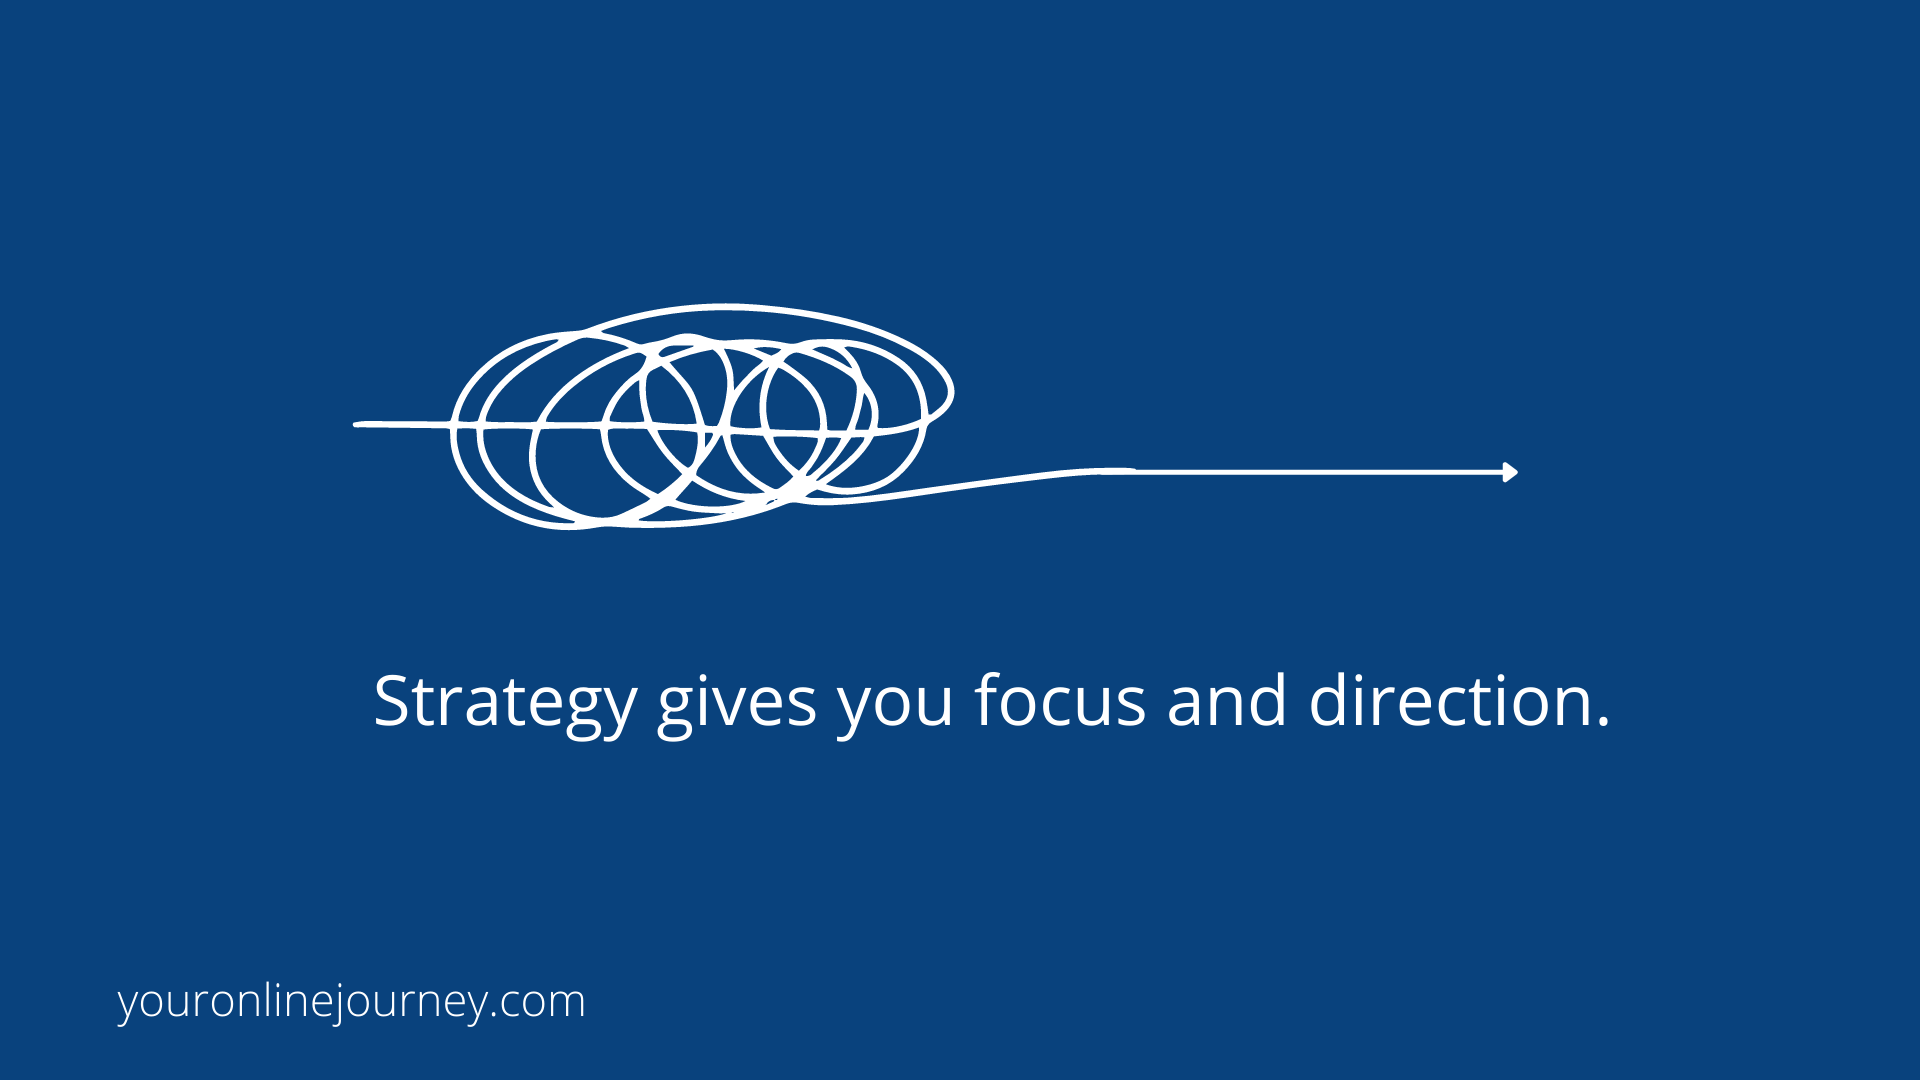 online business strategy gives you focus